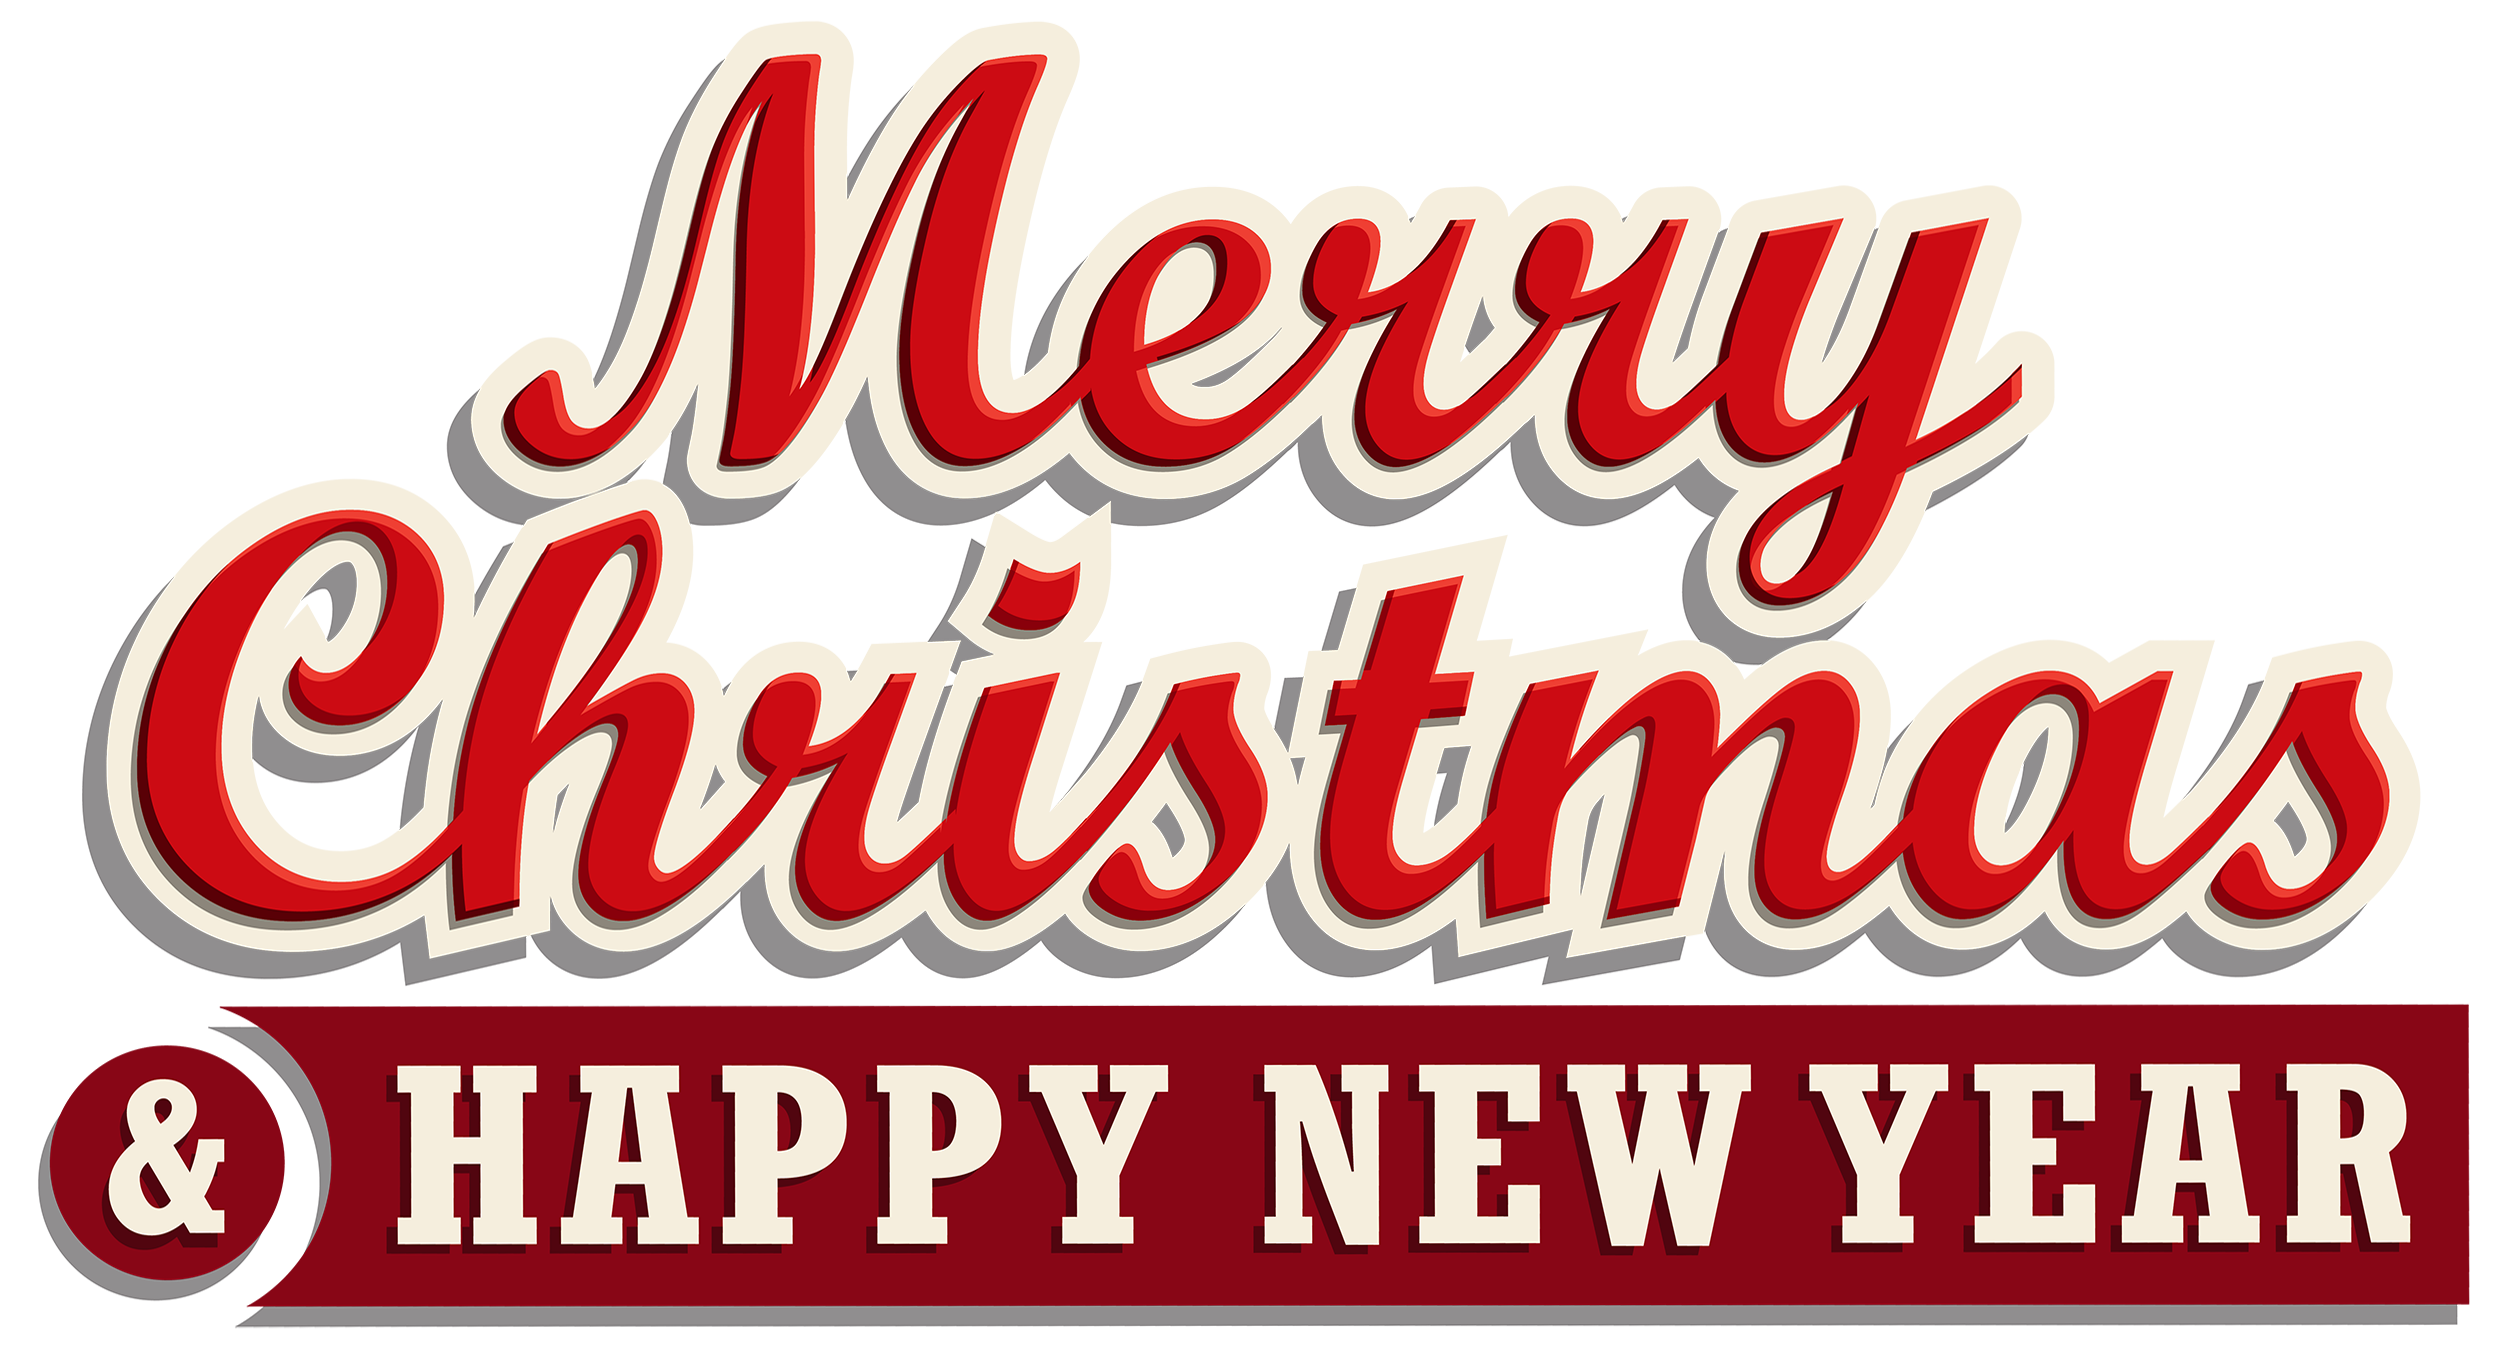 merry christmas and happy new year png free merry christmas and happy new year png transparent images 63966 pngio merry christmas and happy new year png